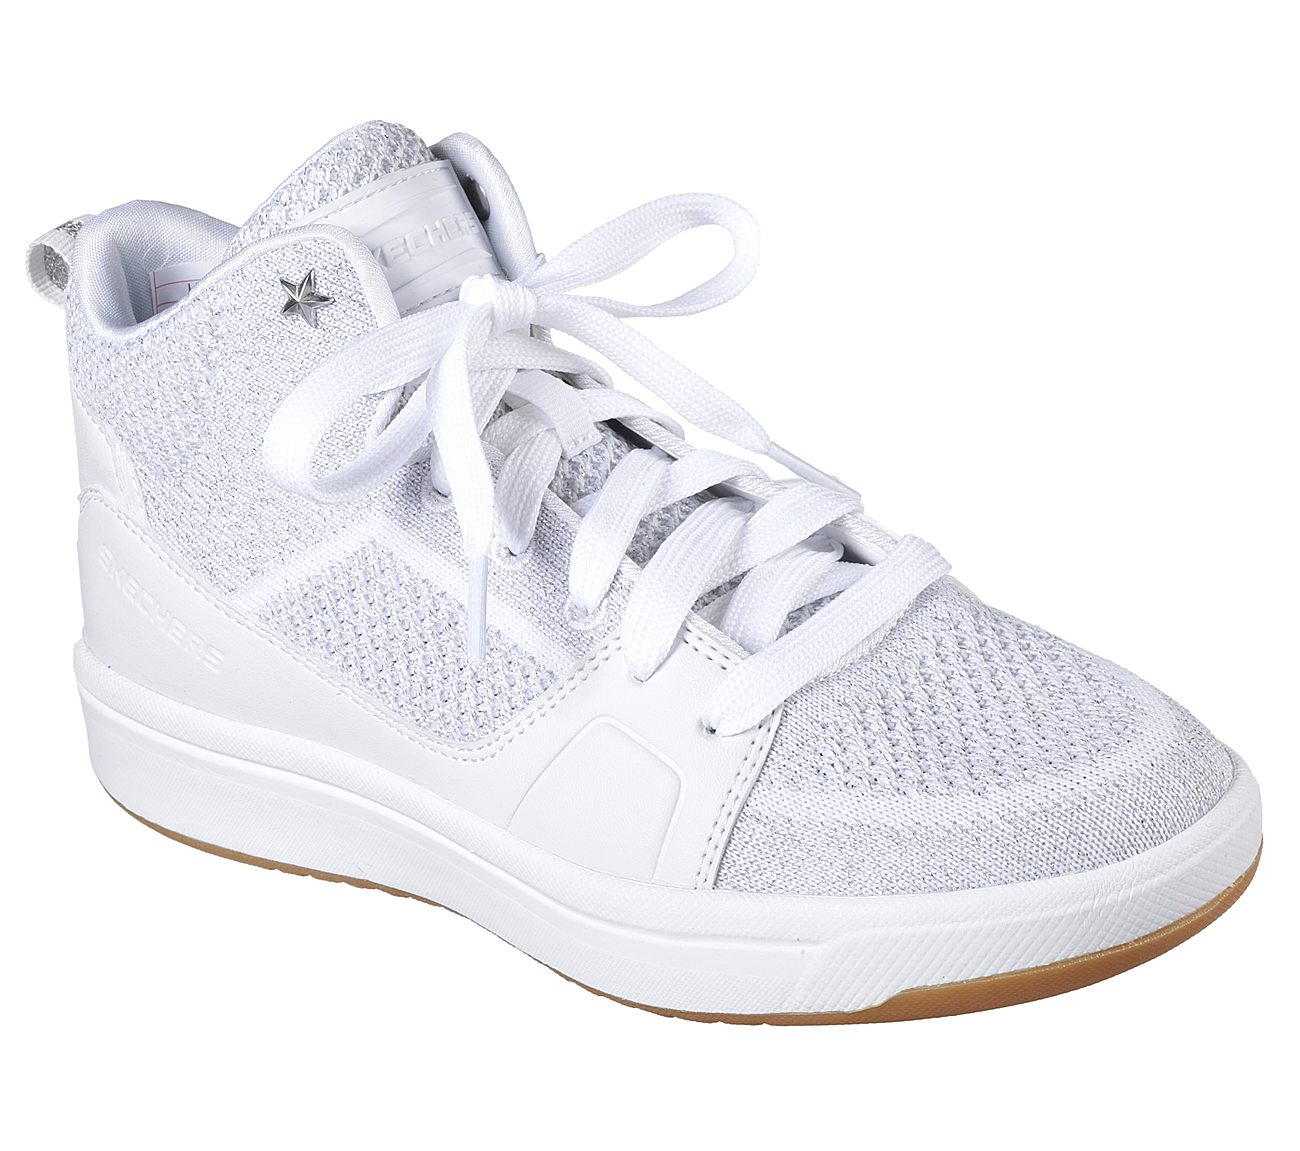 b9131f4a4 Buy SKECHERS Downtown - High Shine SKECHER Street Shoes only $41.00